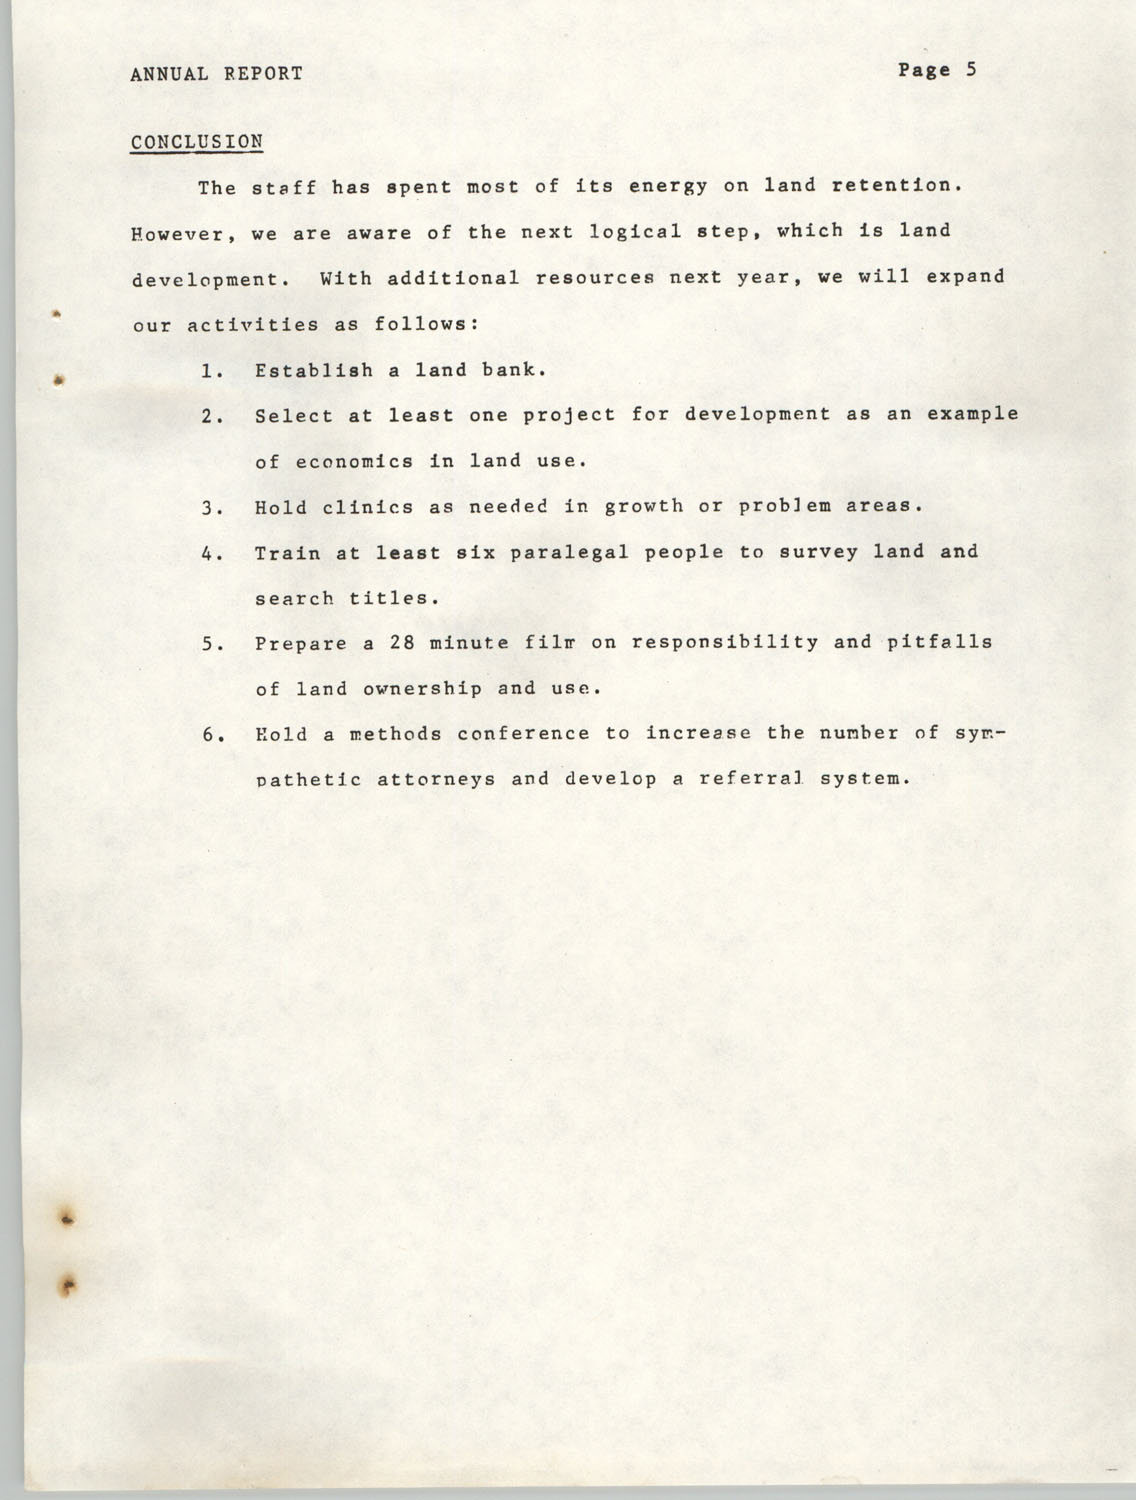 Annual Report, Penn Community Services, 1974, Page 5